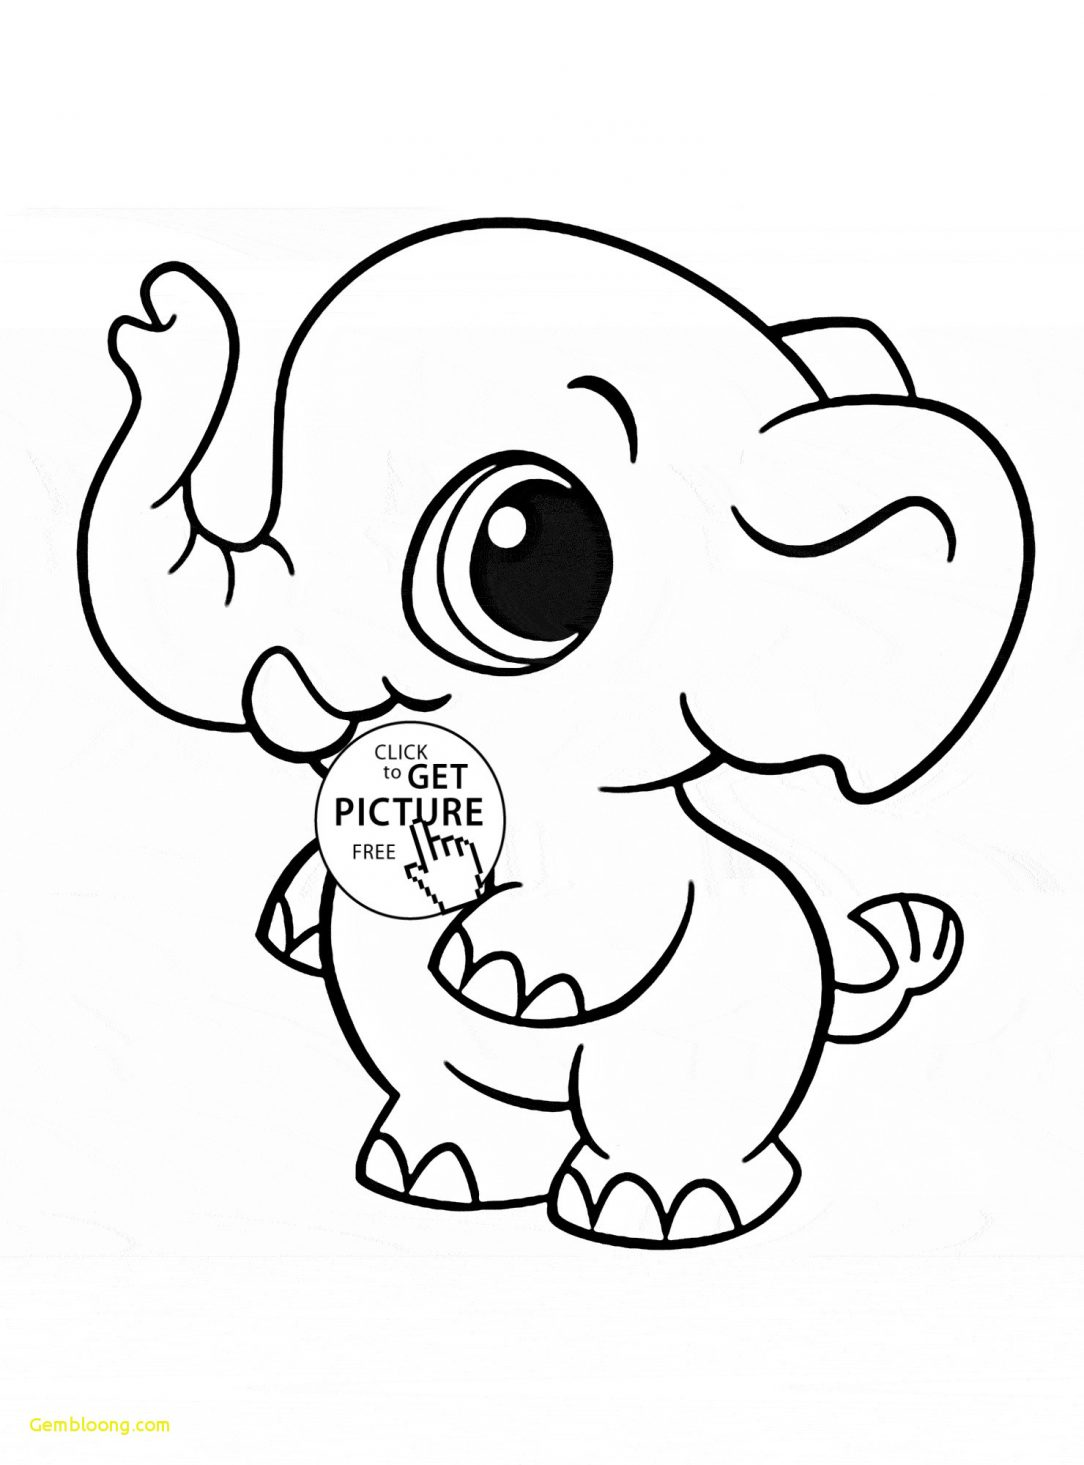 Elephant Pencil Drawing | Free download best Elephant Pencil Drawing